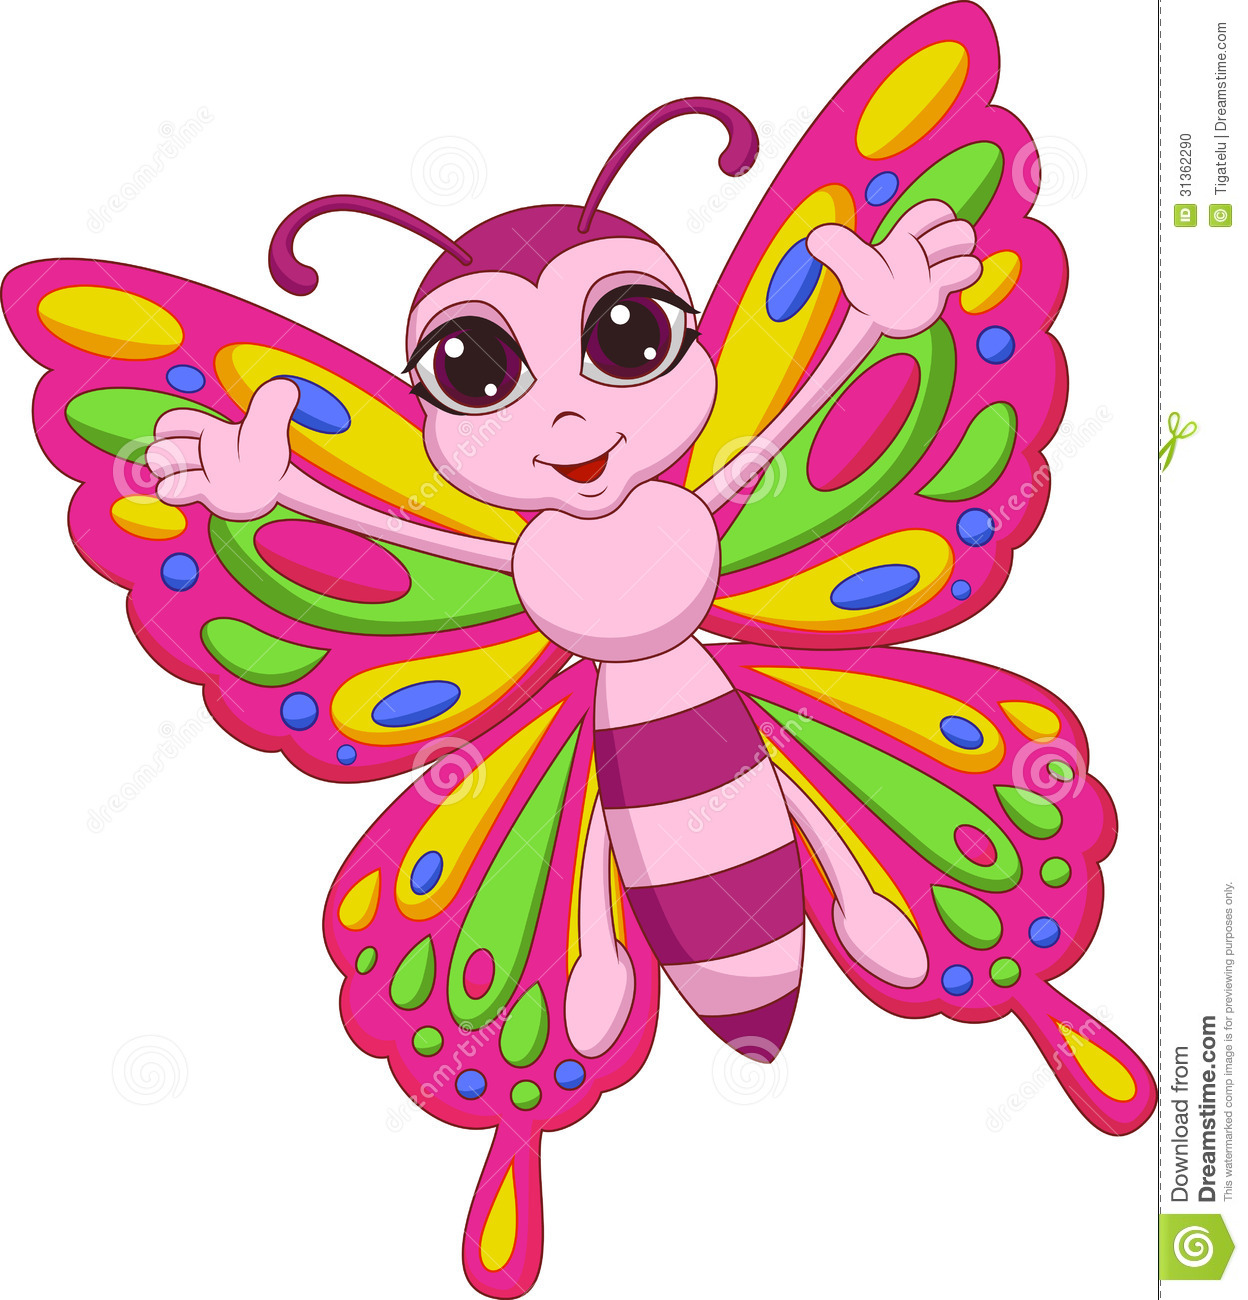 cute butterfly cartoon cartoon vector cartoondealer com 72771213